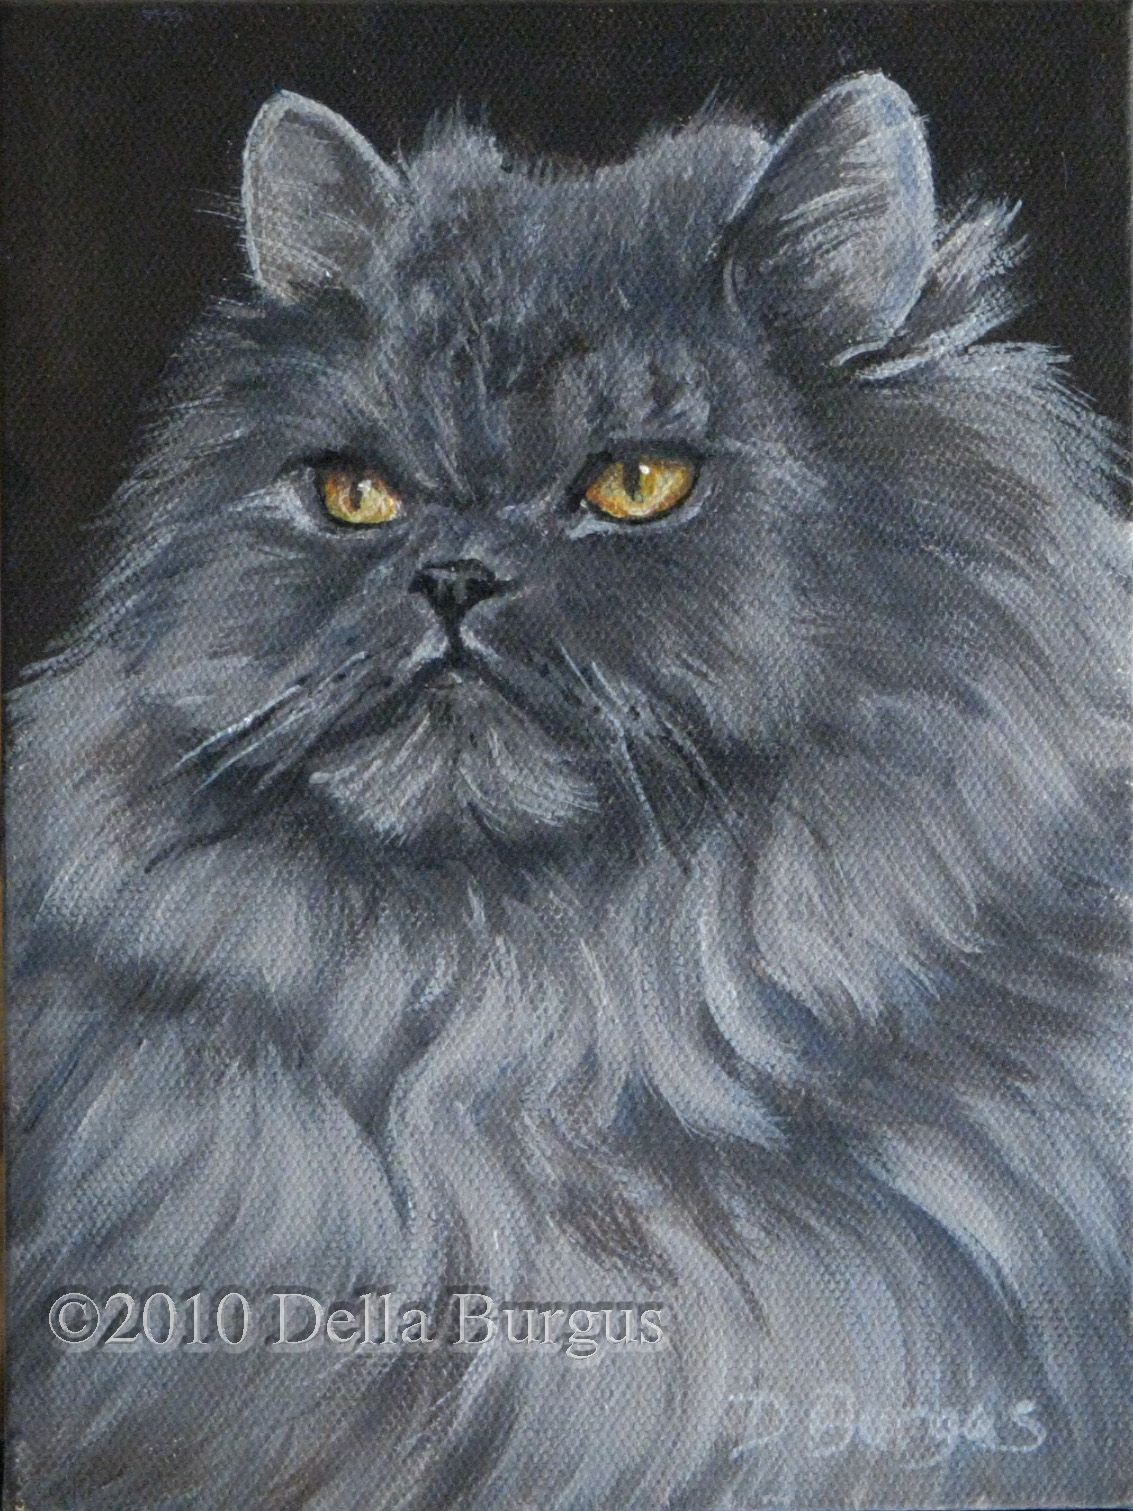 e of the most popular is the Persian Cat an absolutely unique